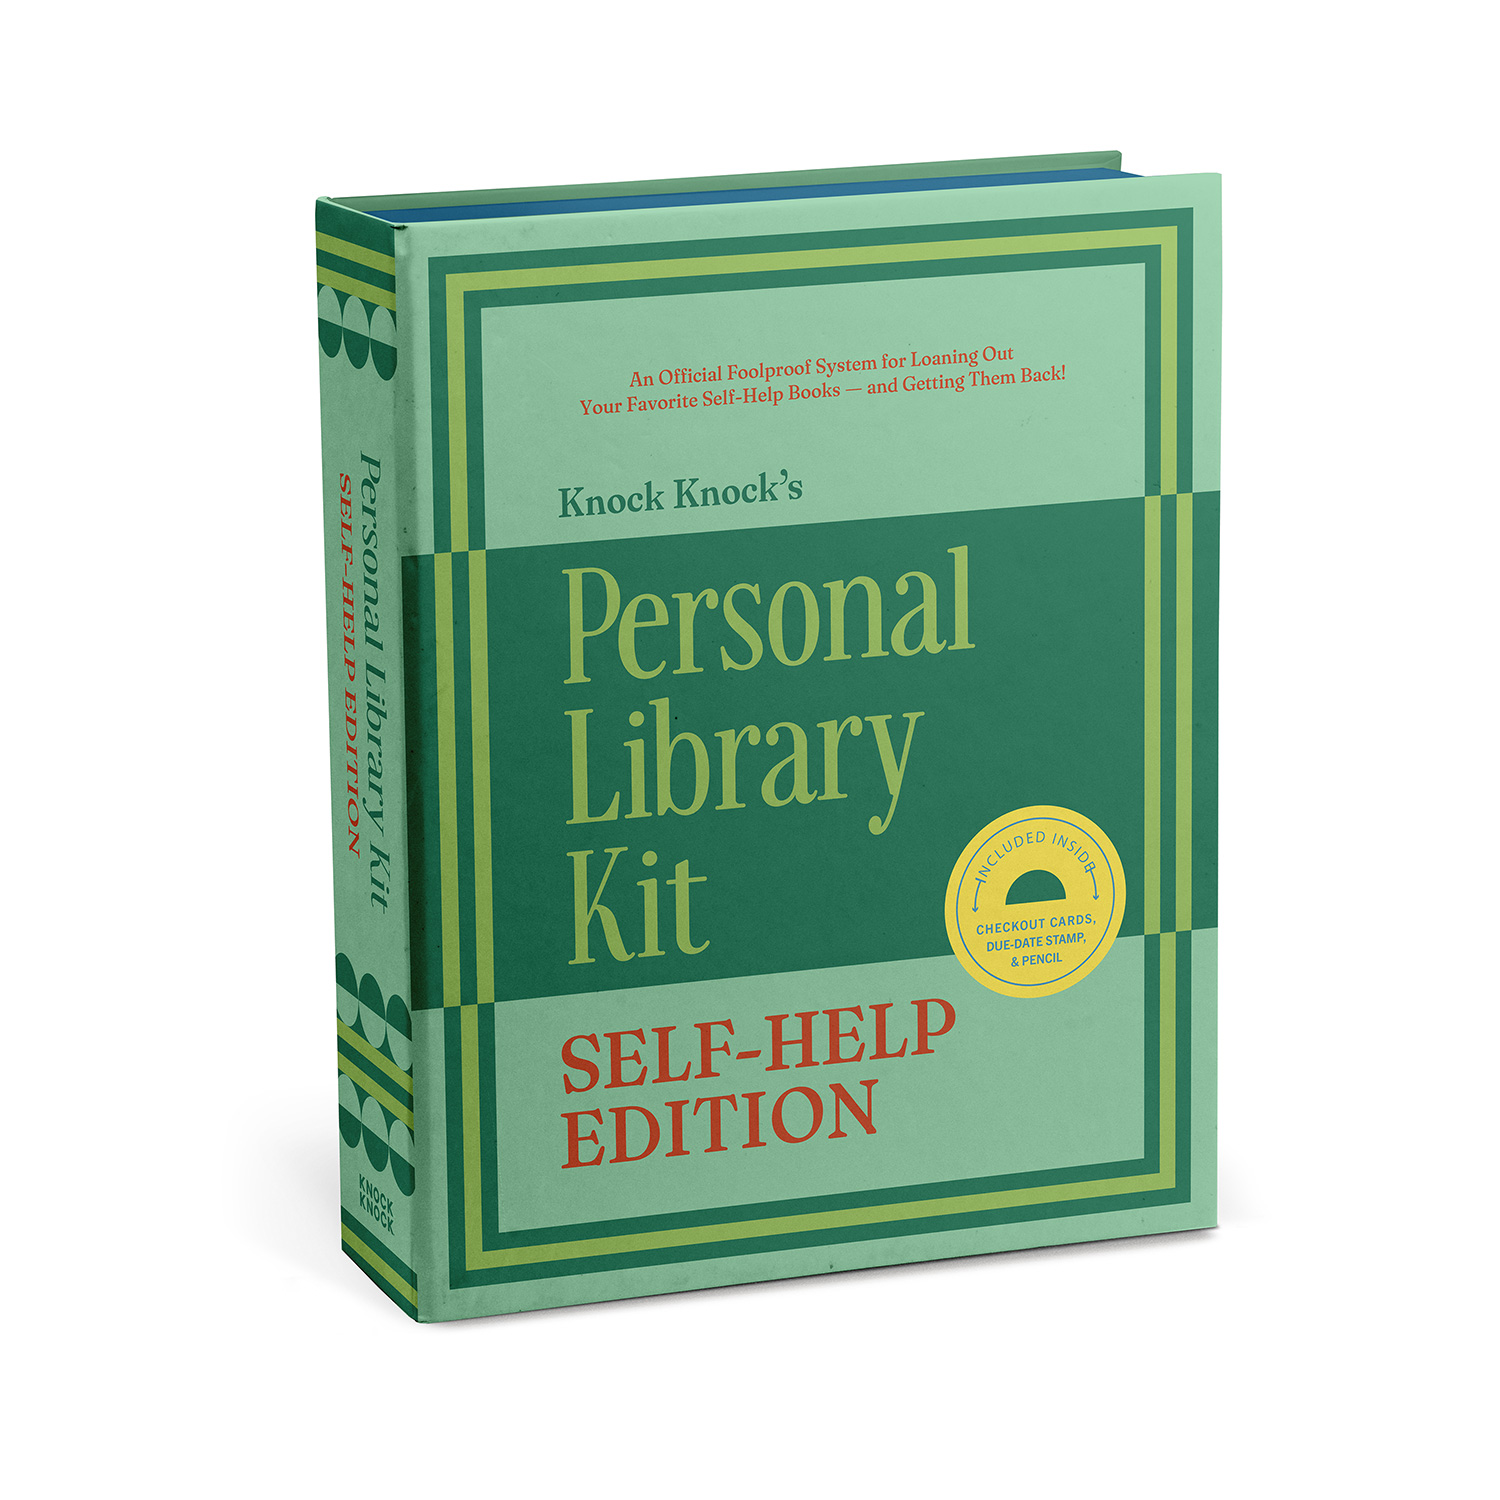 Personal Library Kit: Self Help Edition